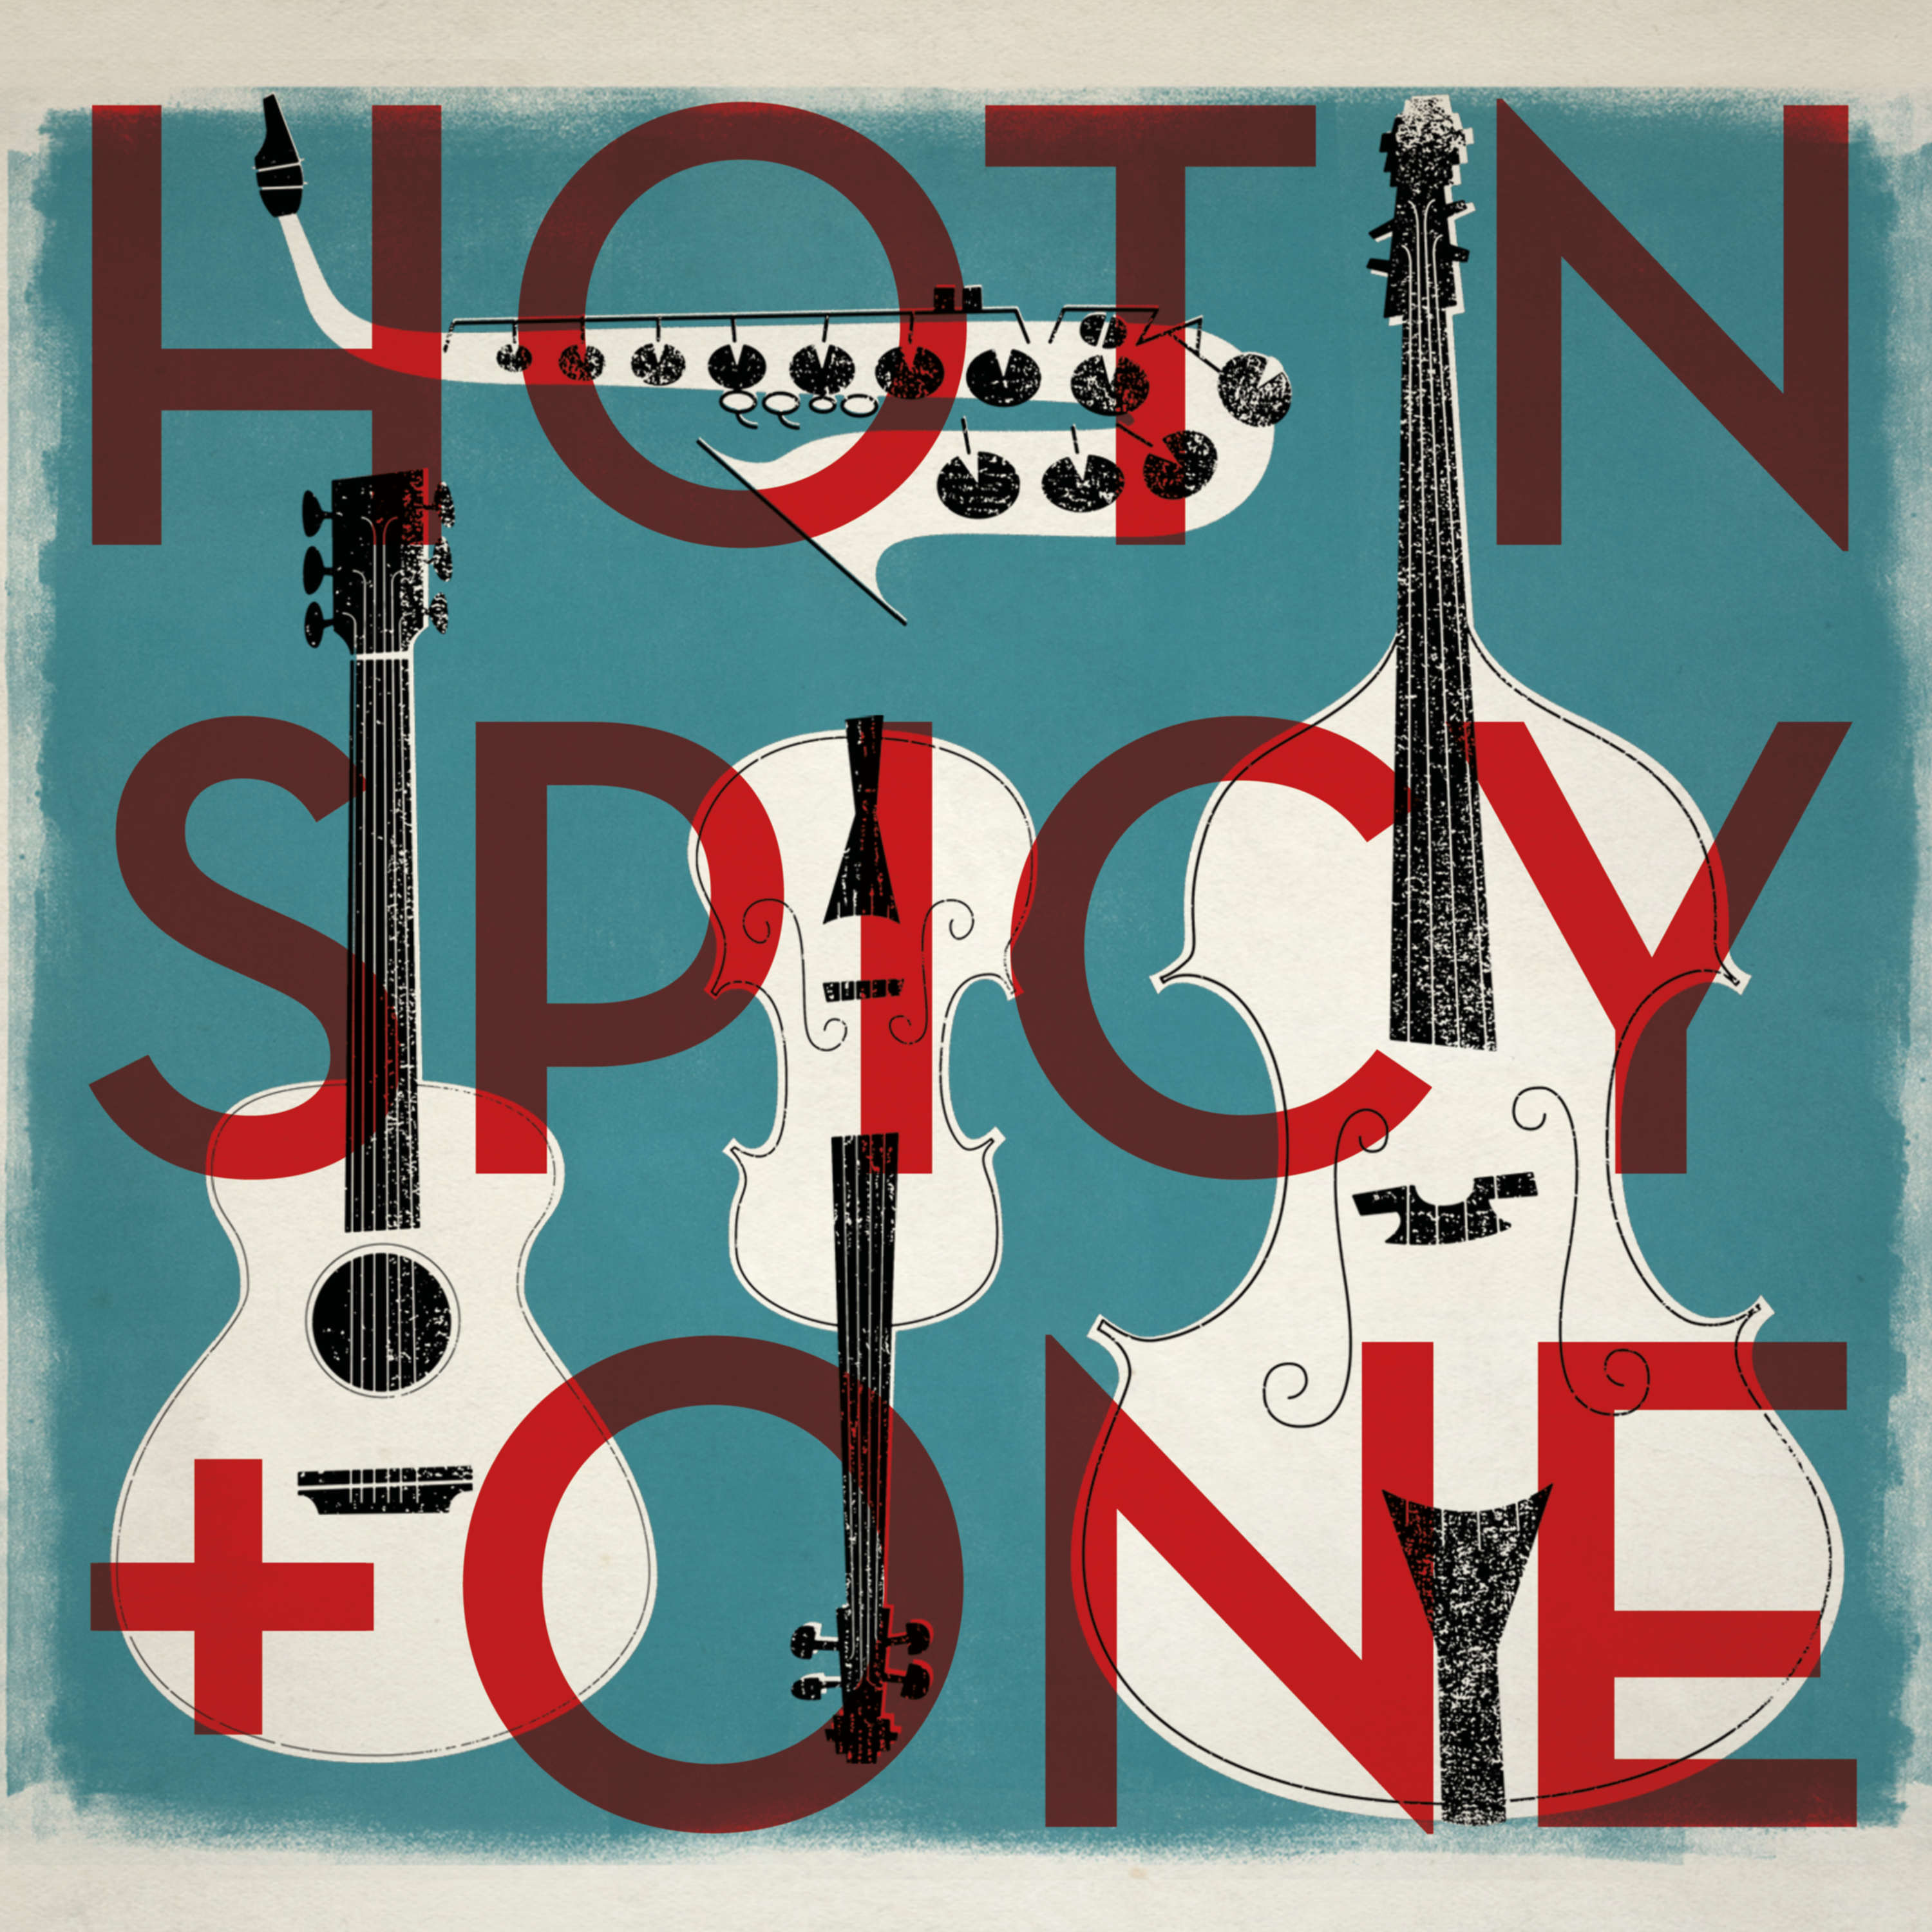 New release HOT N SPICY + ONE available now